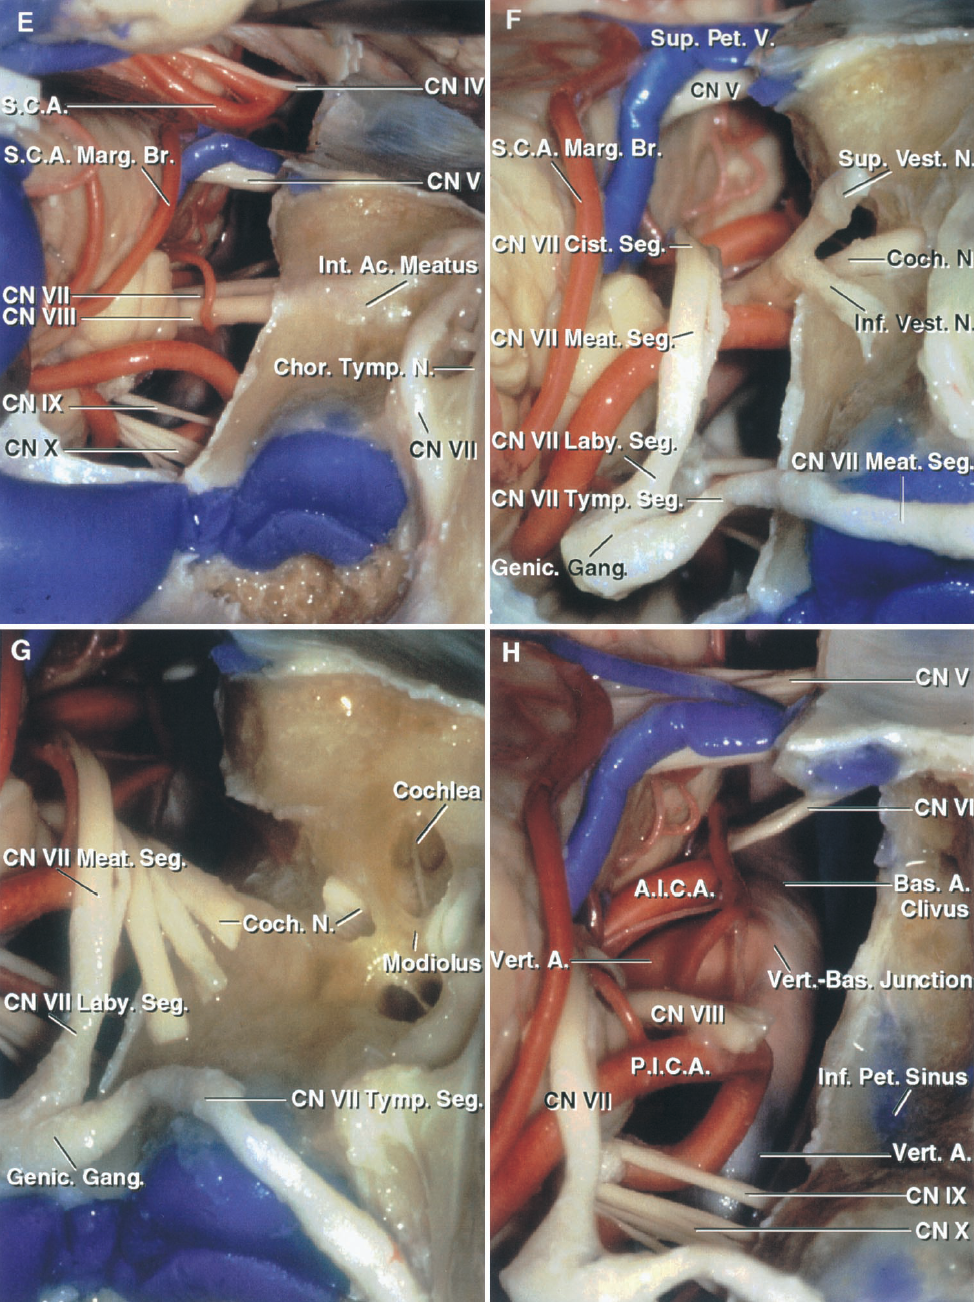 FIGURE 8.14. E–H. Presigmoid approach. E, the labyrinthectomy has been completed to expose the internal acoustic meatus. F, the dura lining the meatus has been opened and the facial nerve has been transposed posteriorly. The facial segments are the cisternal segment located in the cistern medial to the meatal porus, the meatal segment that extends laterally from the porus to the meatal fundus, the labyrinthine segment that is located between the fundus and the geniculate ganglion, the tympanic segment that arises at the ganglion and the sharp turn, the genu, and passes between the lateral semicircular canal and the oval window, and the mastoid segment that descends to exit the stylomastoid foramen. The labyrinthine segment courses between the semicircular canals and vestibule on its posterolateral side and the cochlea on its anteromedial margin. The superior and inferior vestibular nerves have lost their end organs with the drilling of the semicircular canals and vestibule. The cochlear nerve passes laterally to enter the cochlea, which is still preserved in the bone anteromedial to the fundus of the meatus. G, the cochlear nerve has been divided and reflected and bone removed to expose the cochlea. H, the transcochlear exposure, completed by removing the cochlea and surrounding petrous apex, provides access to the front of the brainstem and vertebrobasilar junction, but at the cost of loss of hearing due to the labyrinthectomy and almost certain temporary or permanent facial weakness associated with the posterior transposition of the facial nerve.